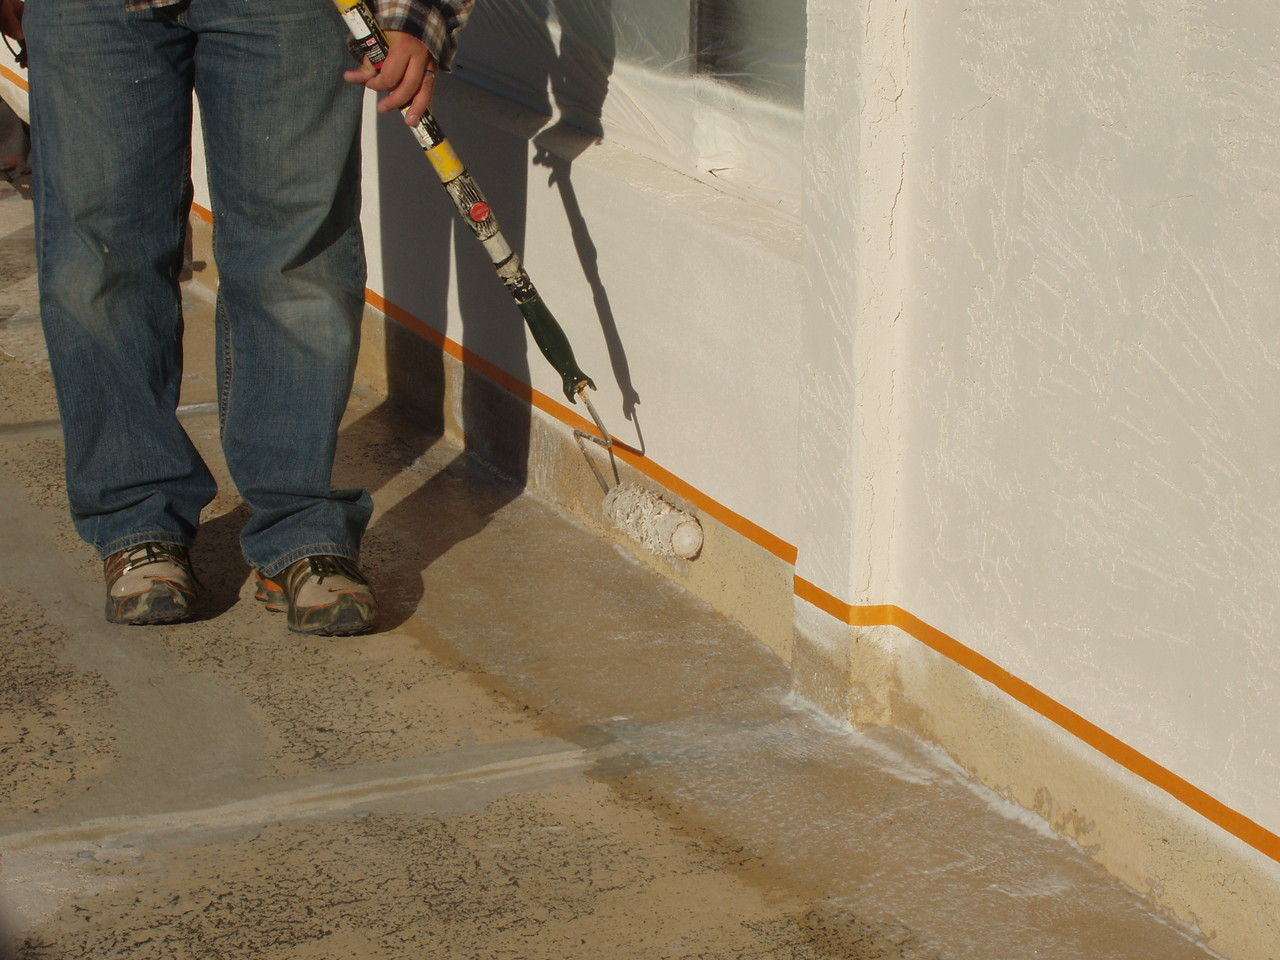 EnviroCoatings - Rolled Ceramic InsulSeal to prevent over-spray on walls.